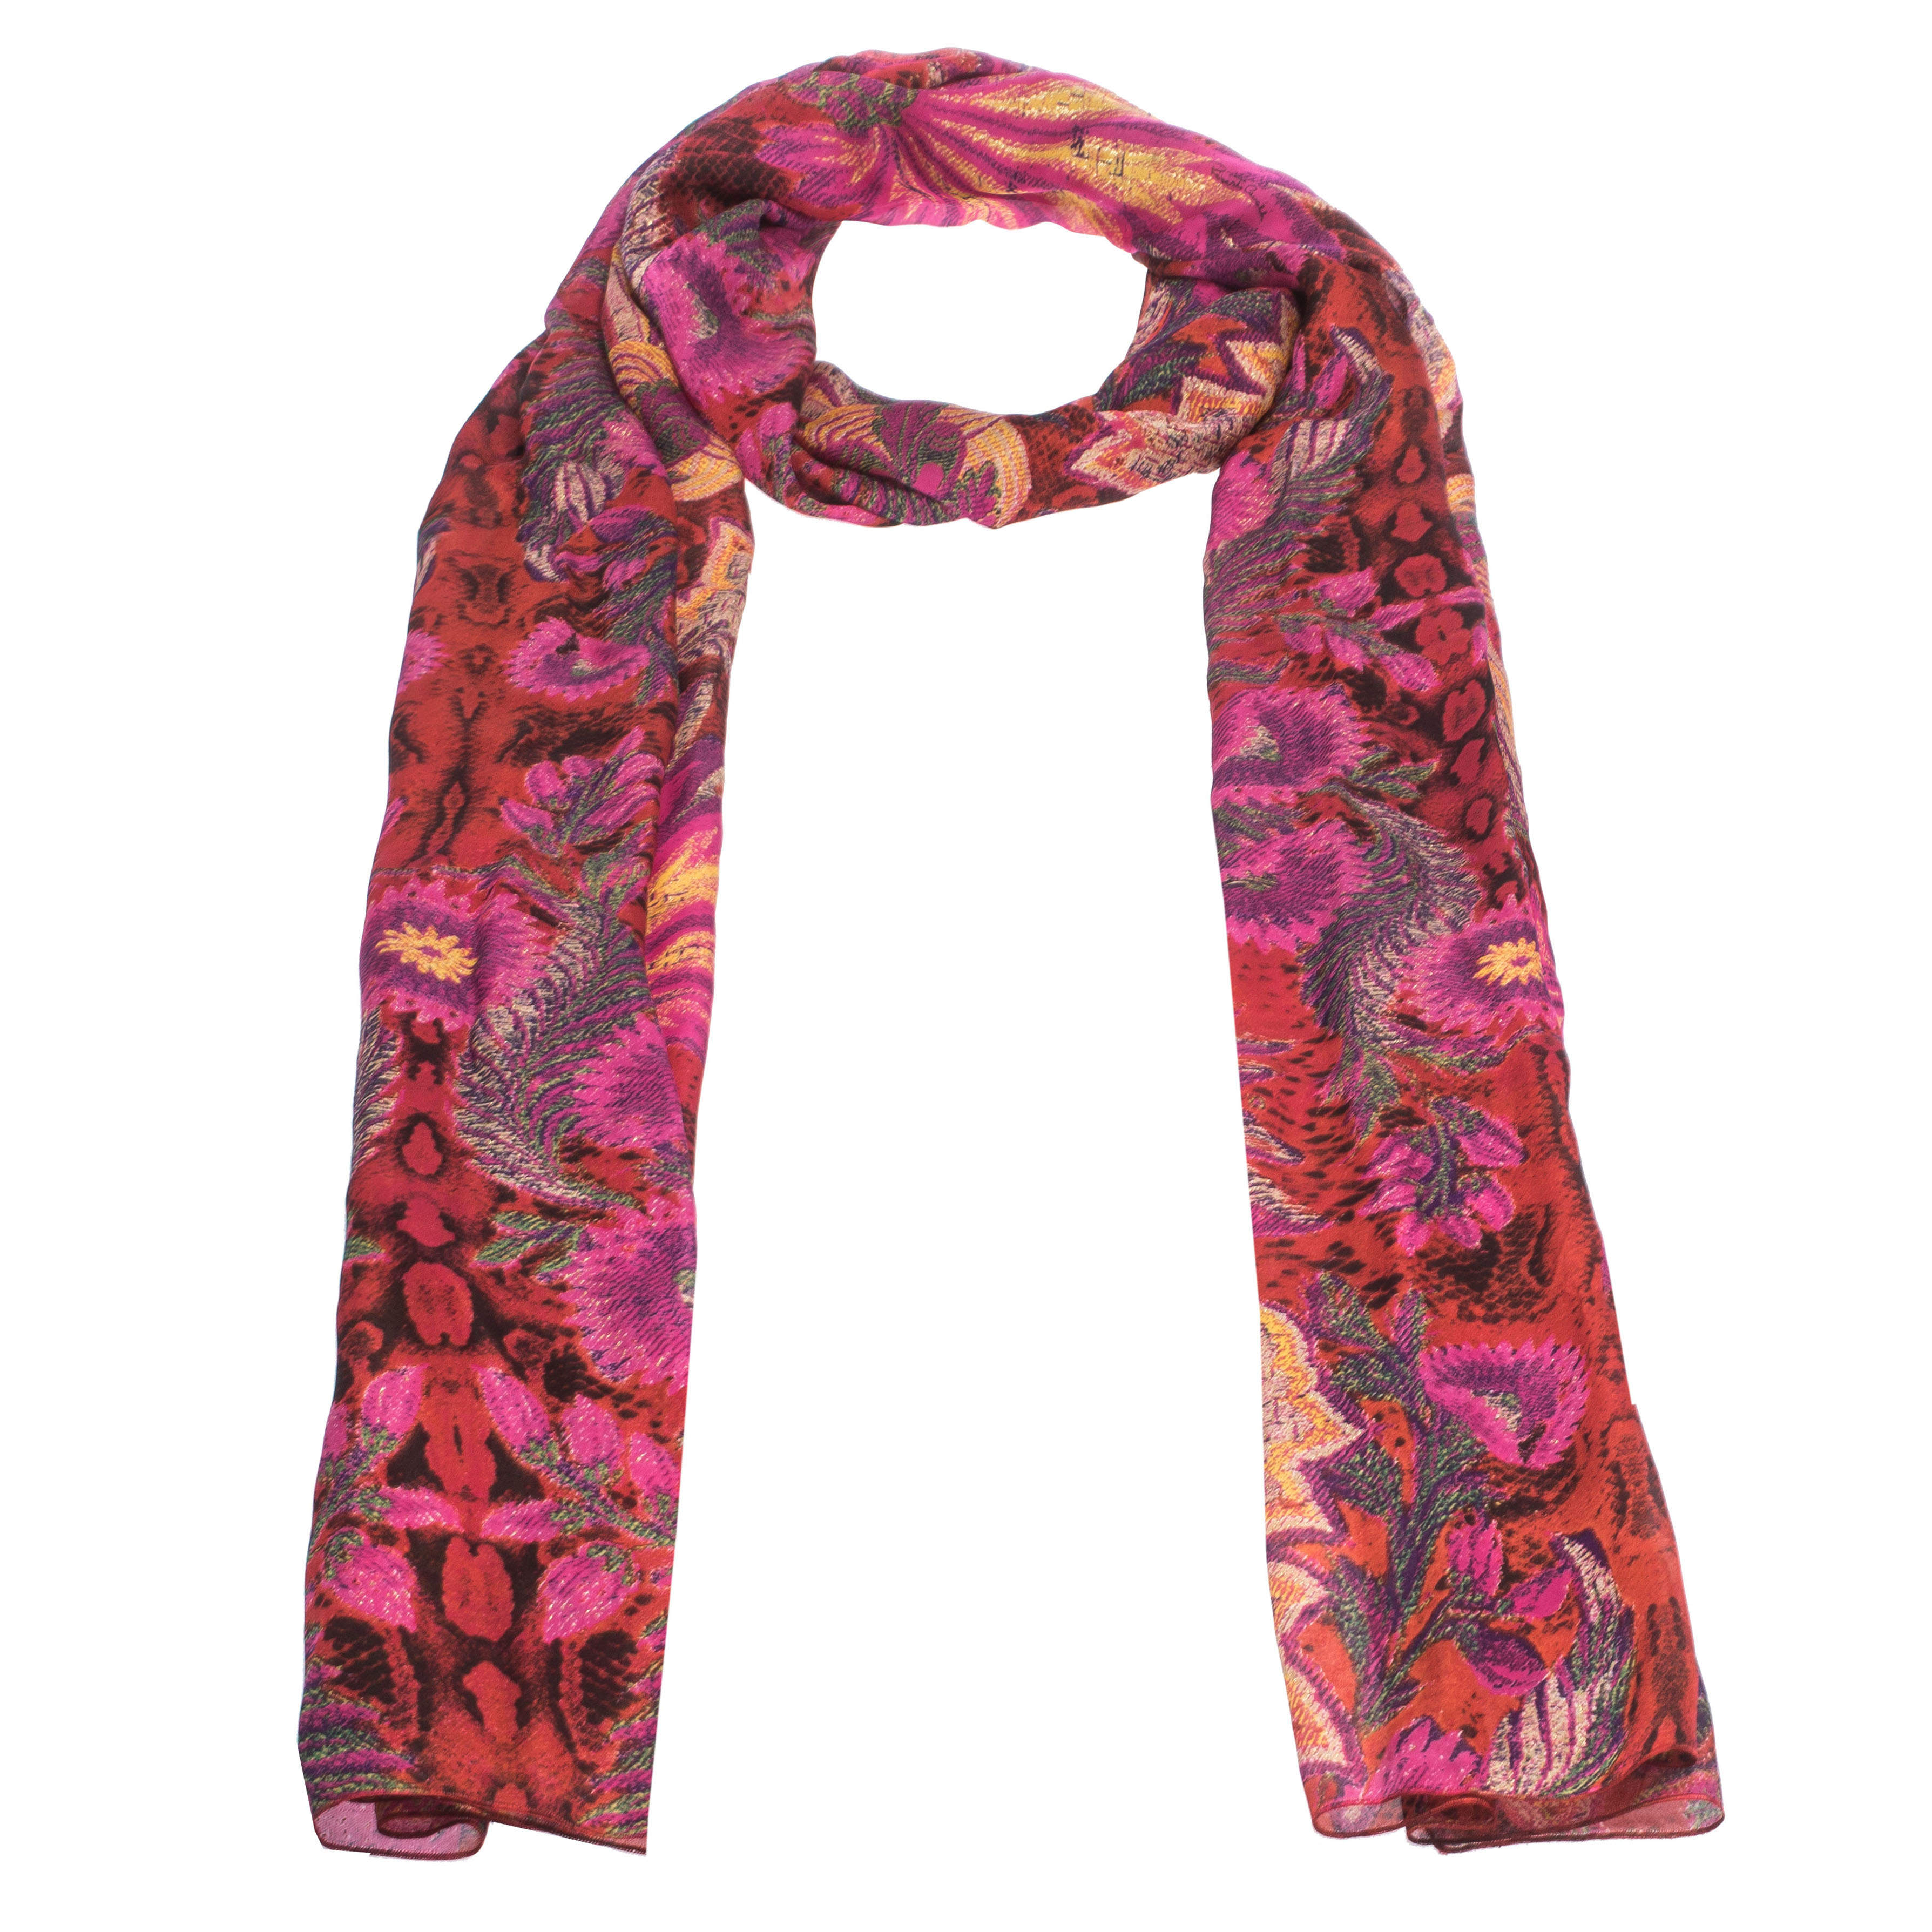 Roberto Cavalli Pink Abstract Floral Foil Printed Silk Stole